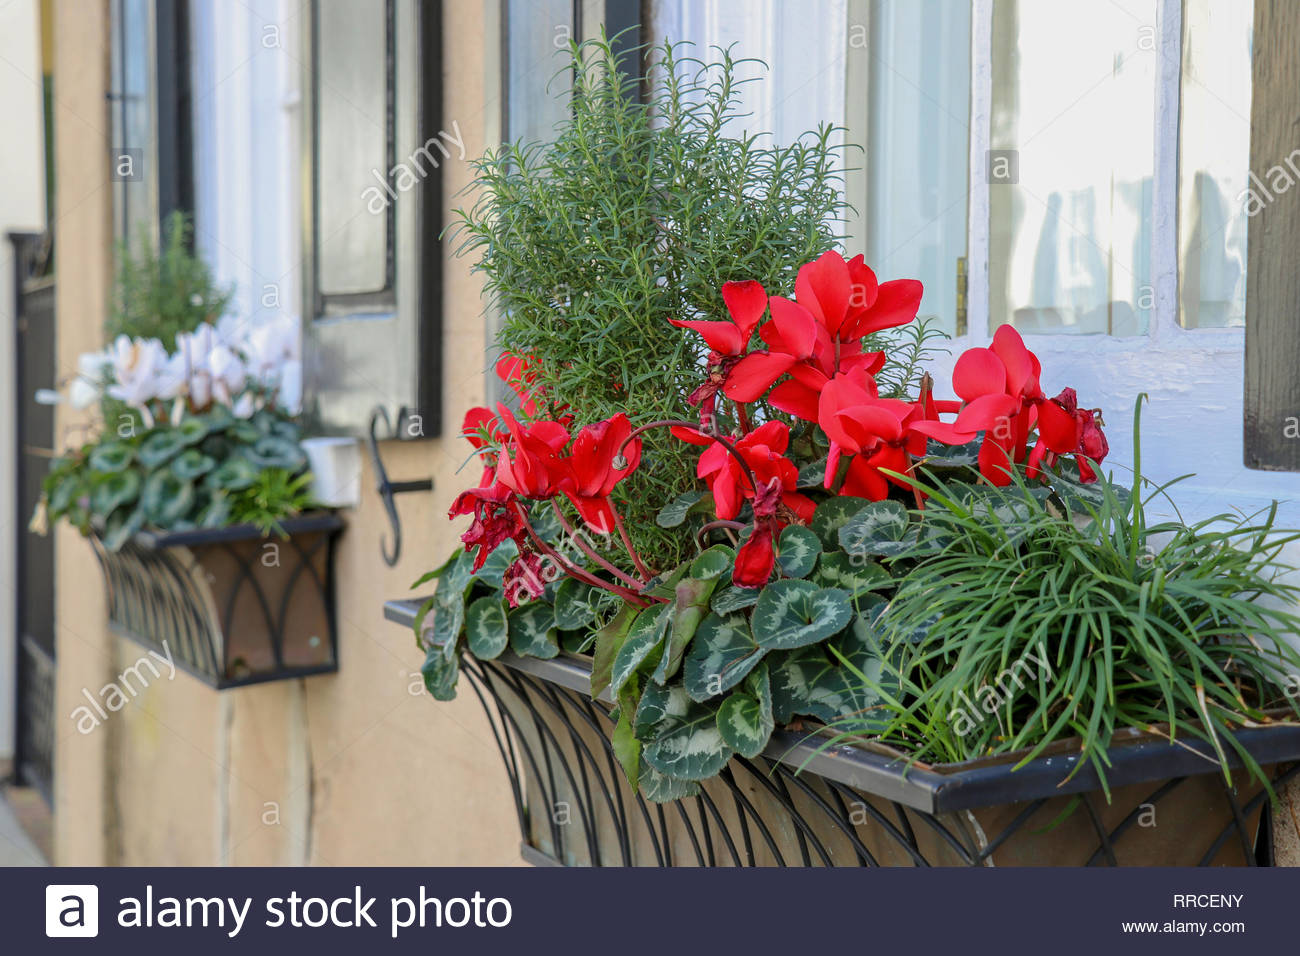 window boxes planted with rosemary and blooming cyclamen on a street in the historic district of Charleston, South Carolina - Stock Image